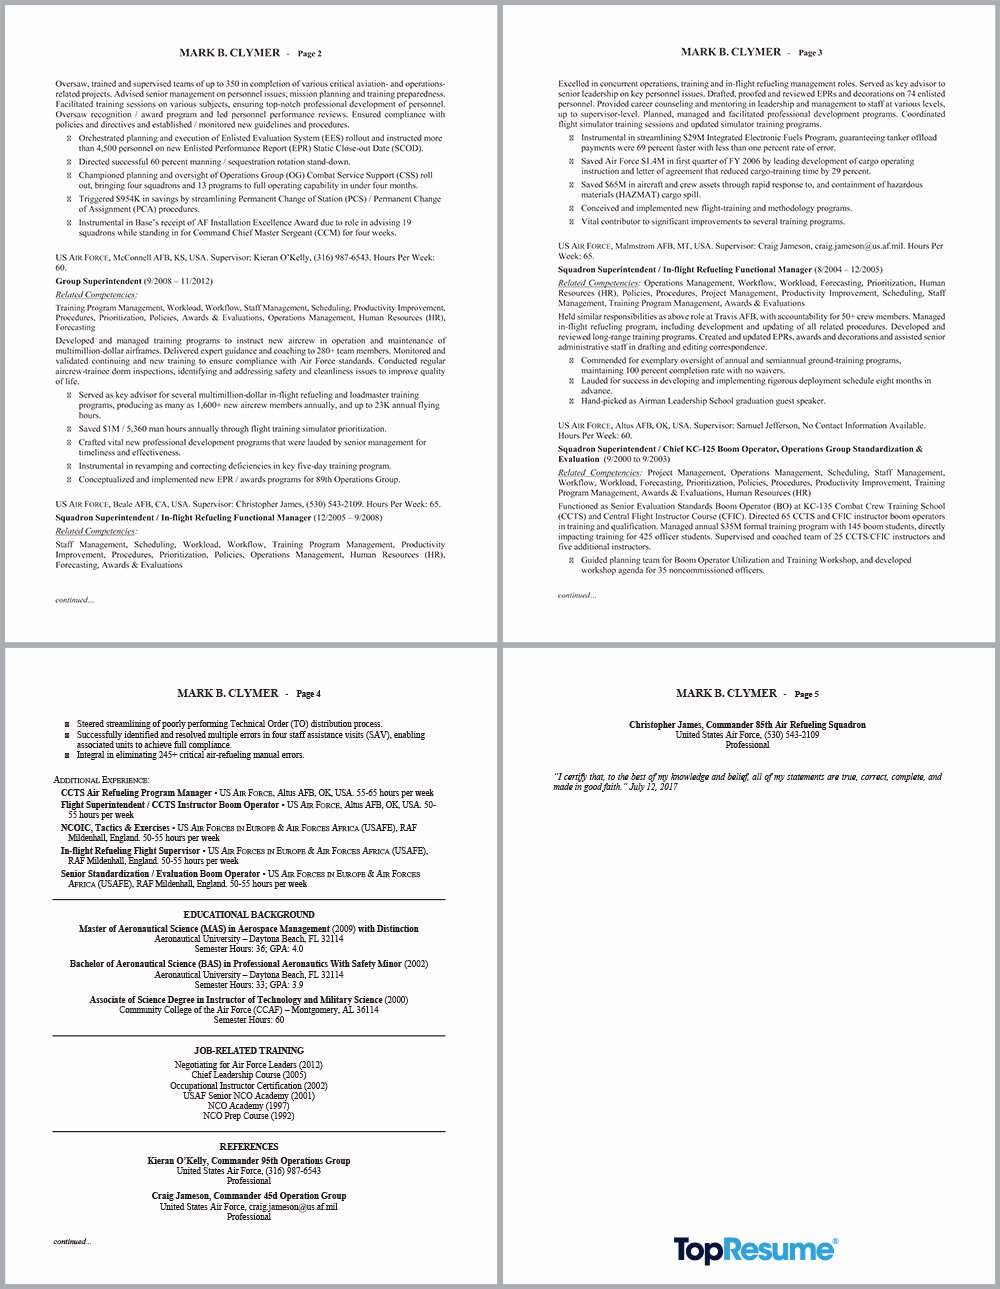 Sample Resume for Federal Jobs New top Resume Tips for Writing A Federal Resume